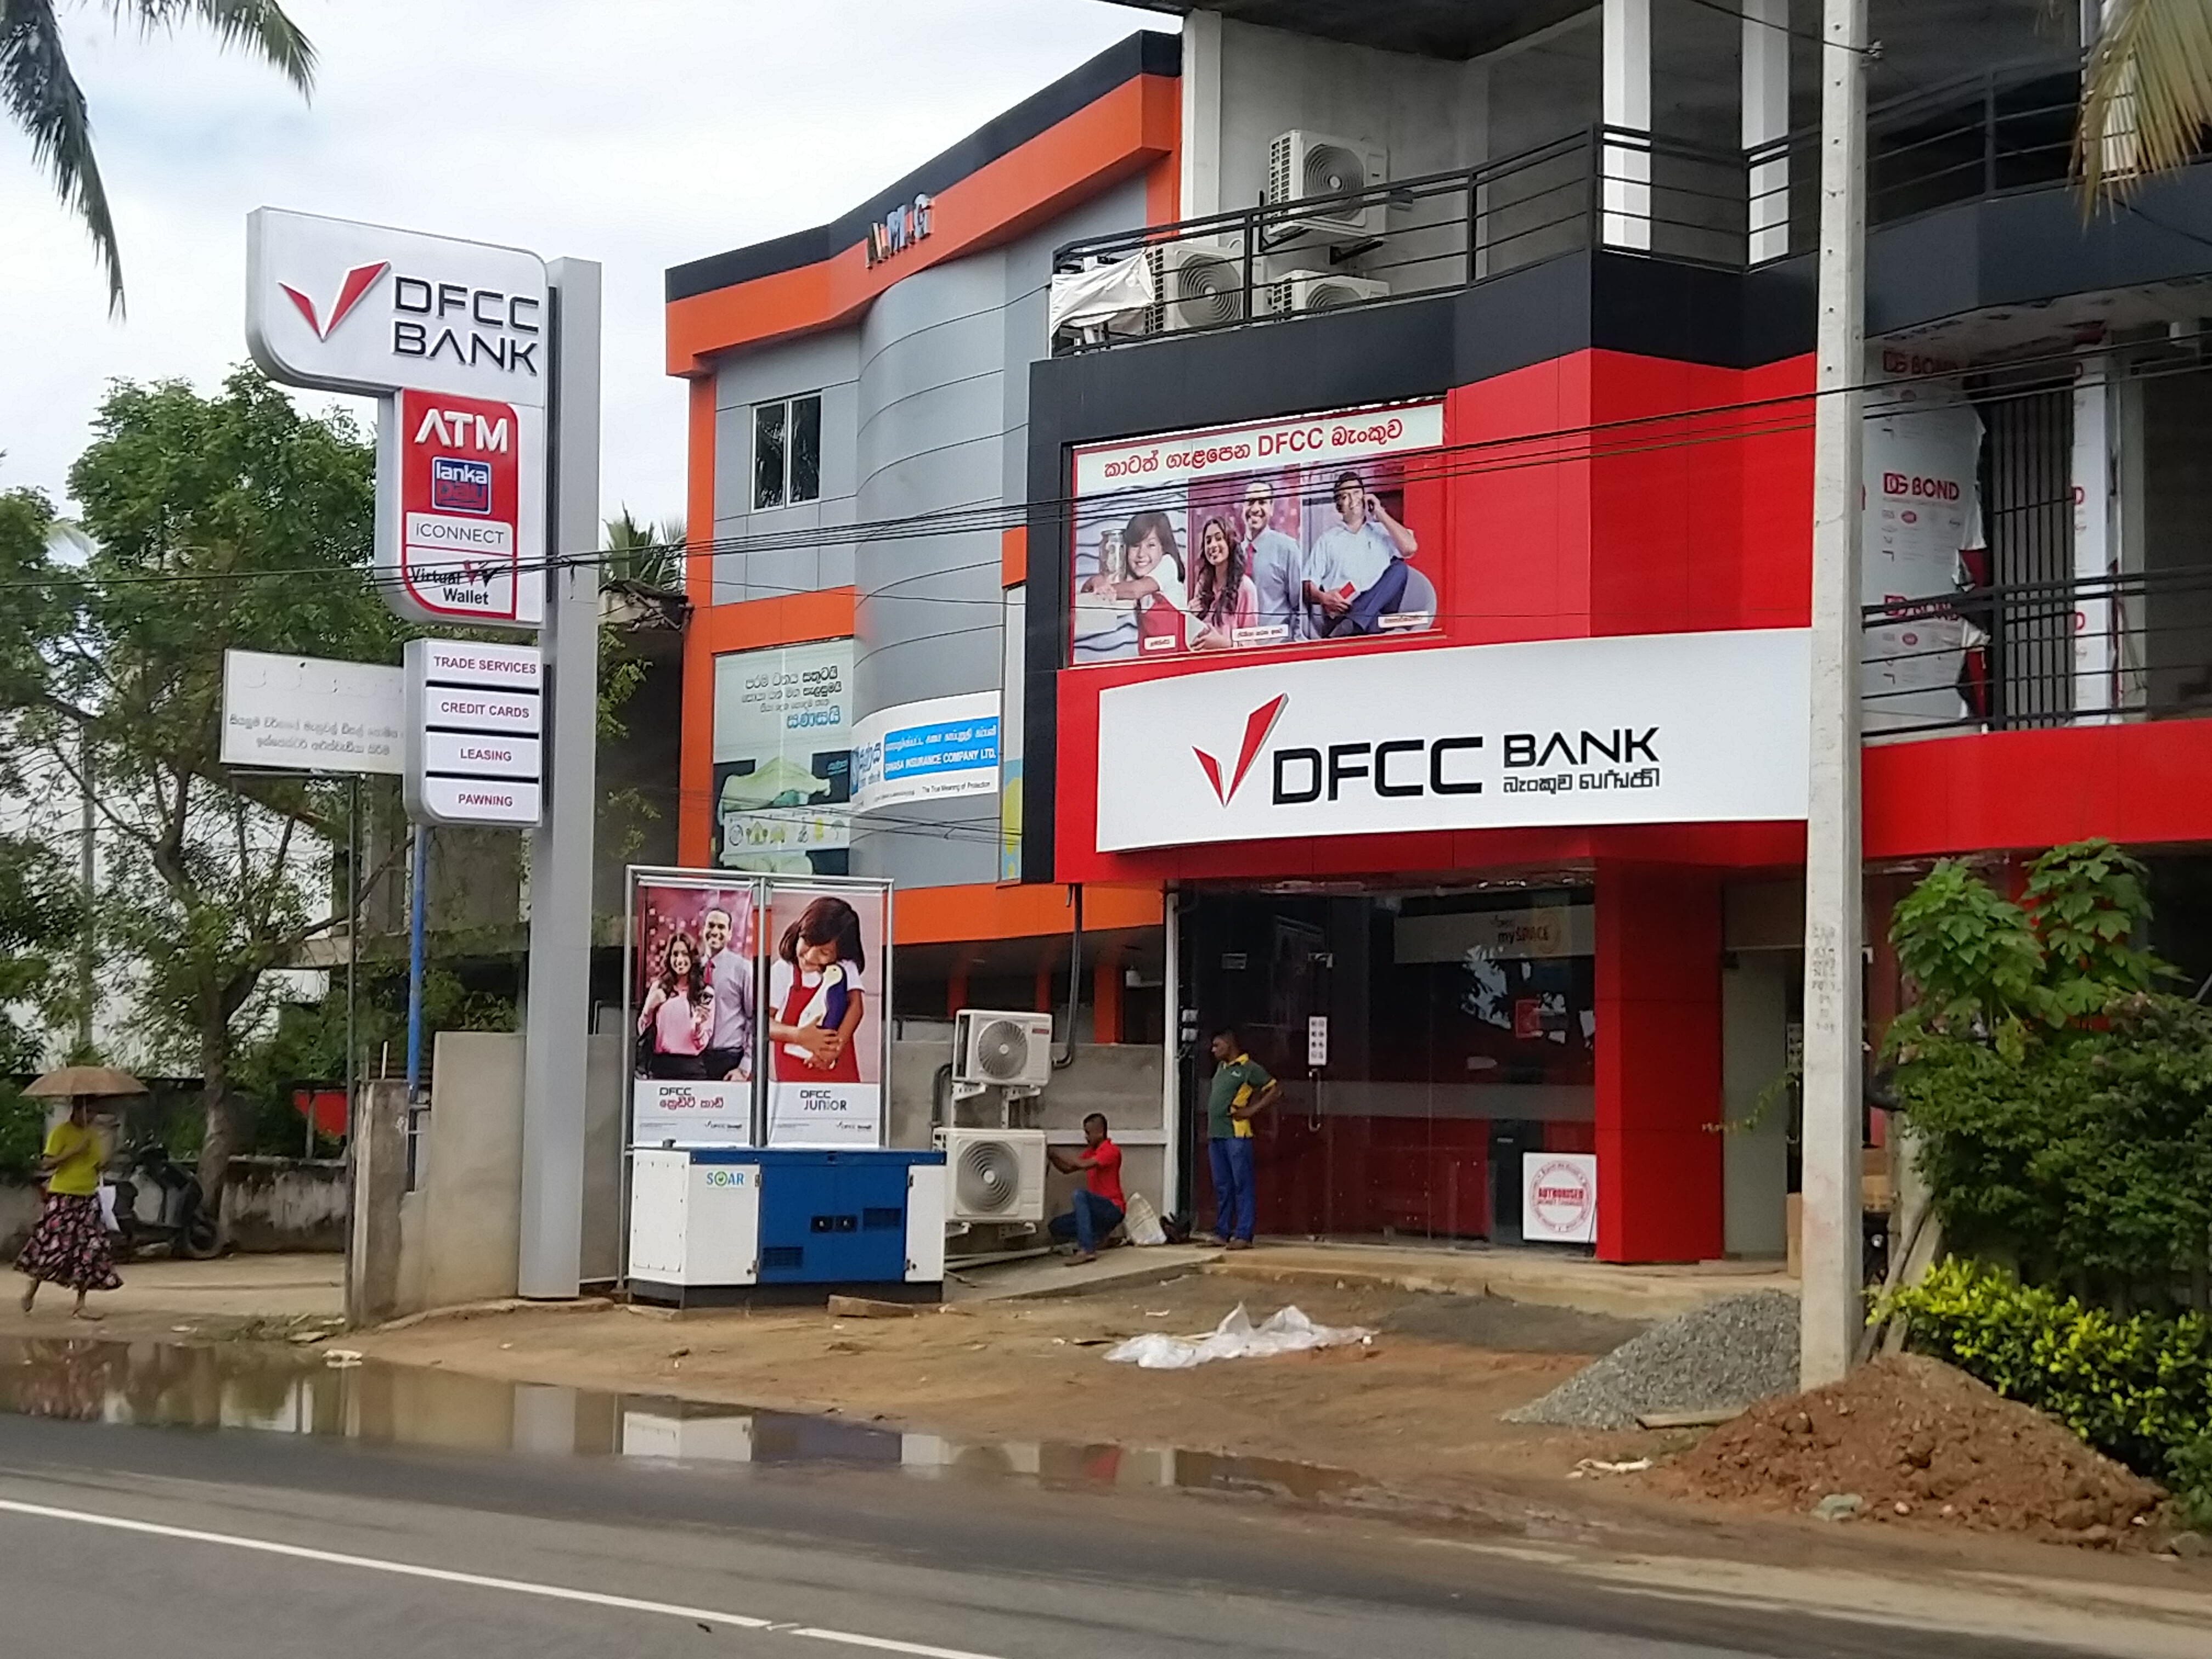 DFCC Bank opens 20 branches across Sri Lanka within 30 Days 3